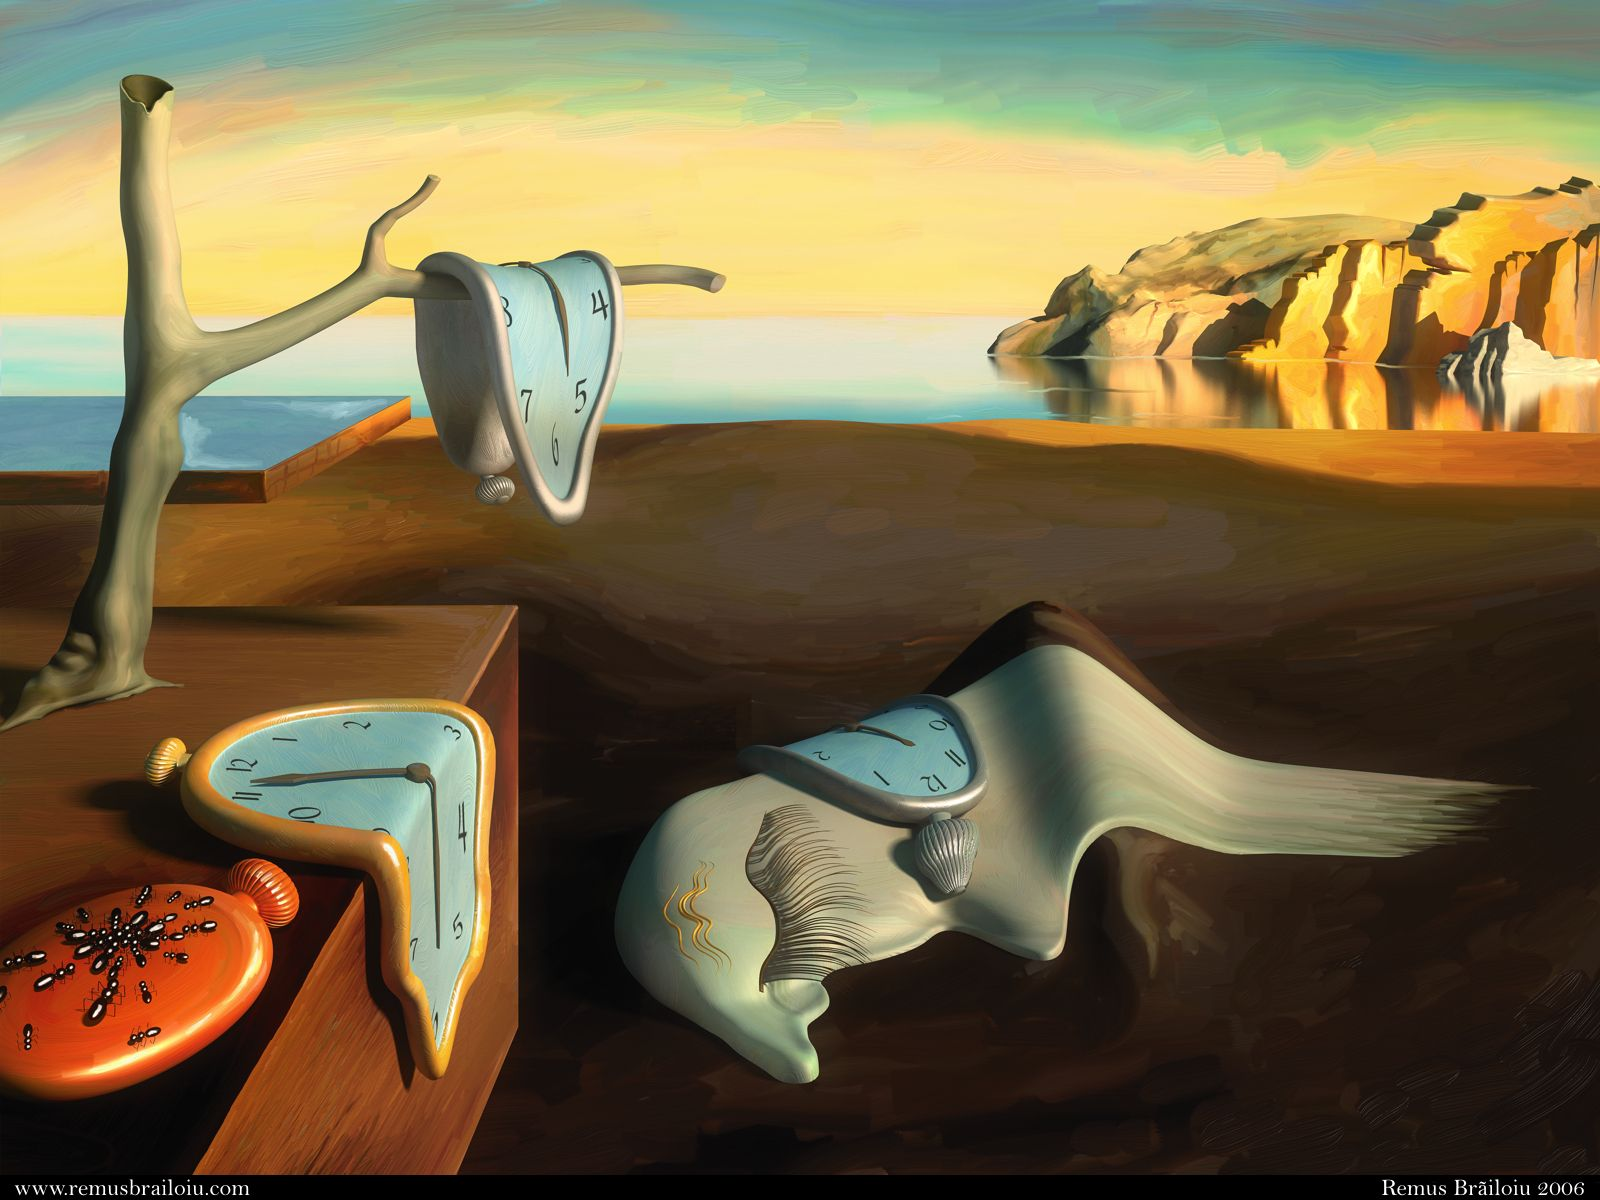 salvador dali persistence of memory meaning of the what is the salvador dali persistence of memory meaning of the what is the meaning of the